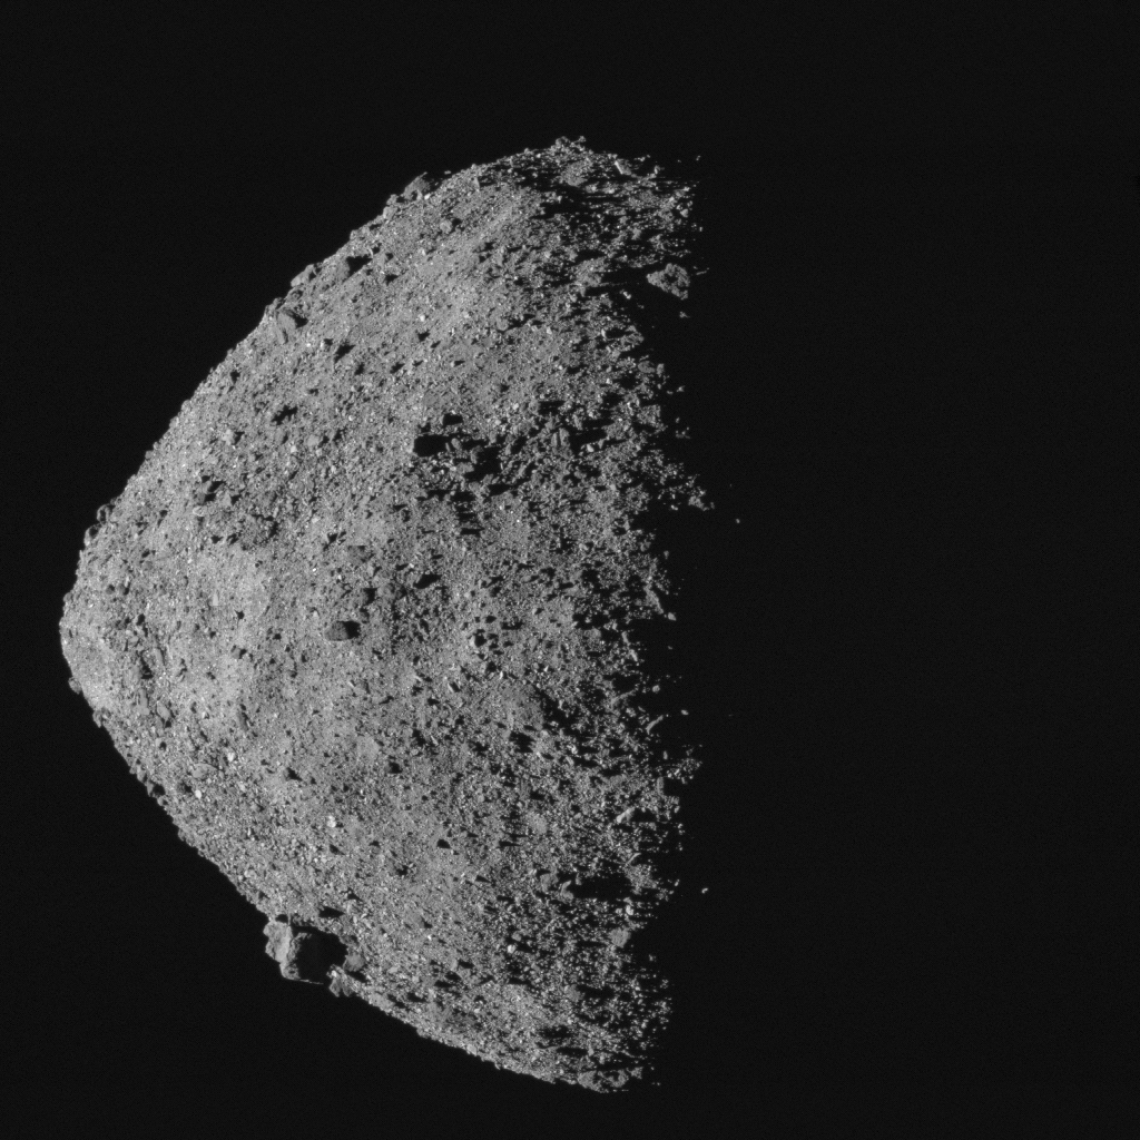 This image, showing asteroid Bennu's spinning-top shape, was taken by the MapCam camera on NASA's OSIRIS-REx spacecraft on April 29, from a distance of 5 miles. From the spacecraft's vantage point, half of Bennu is sunlit and half is in shadow. 